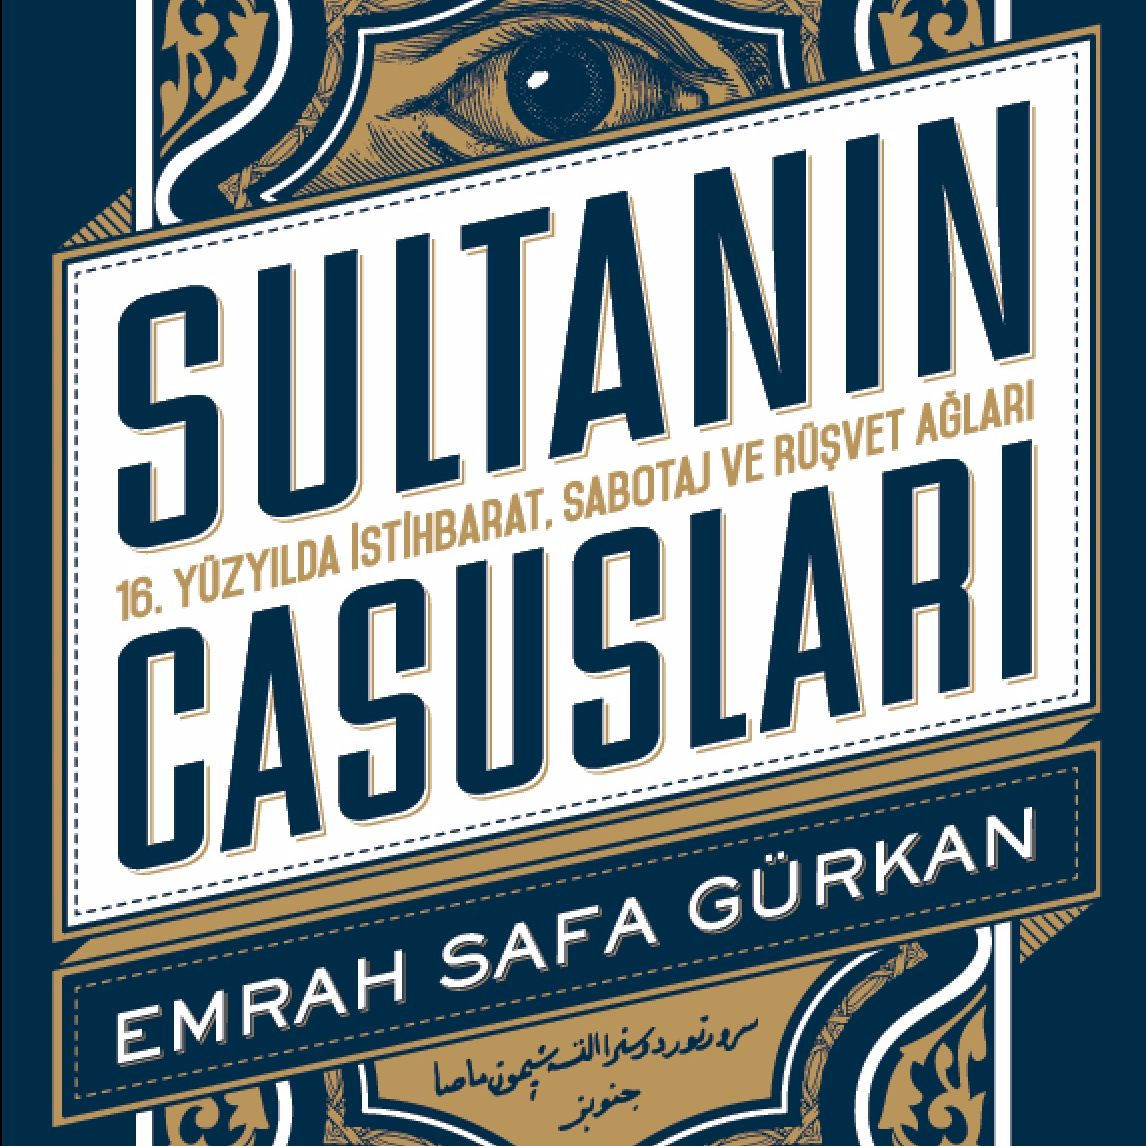 Spies of the Sultan | Emrah Safa Gürkan